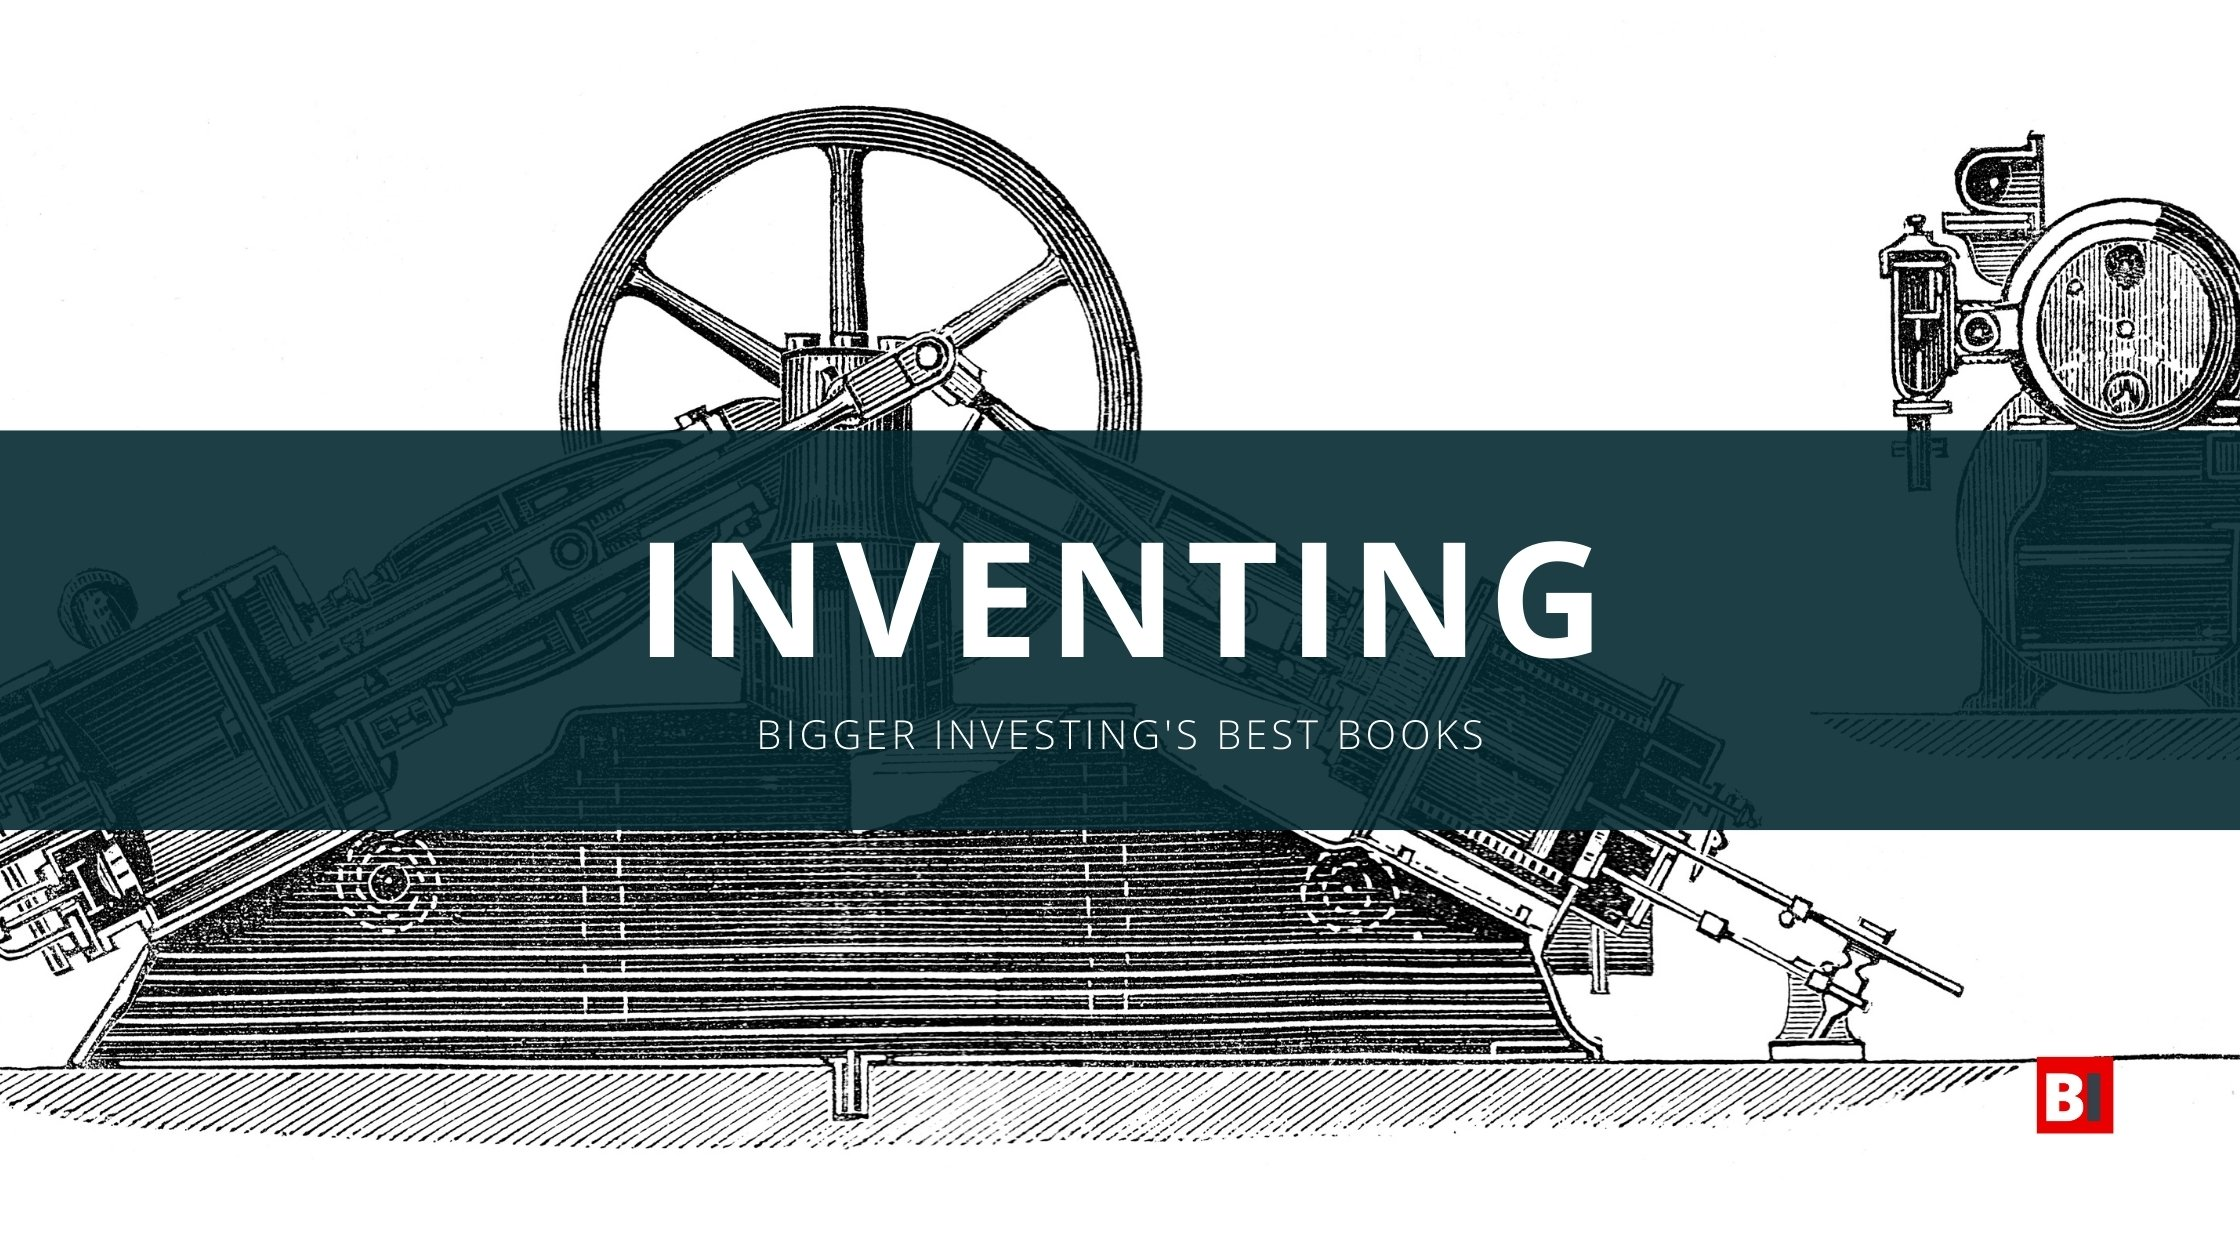 Best Books on Inventing (1)